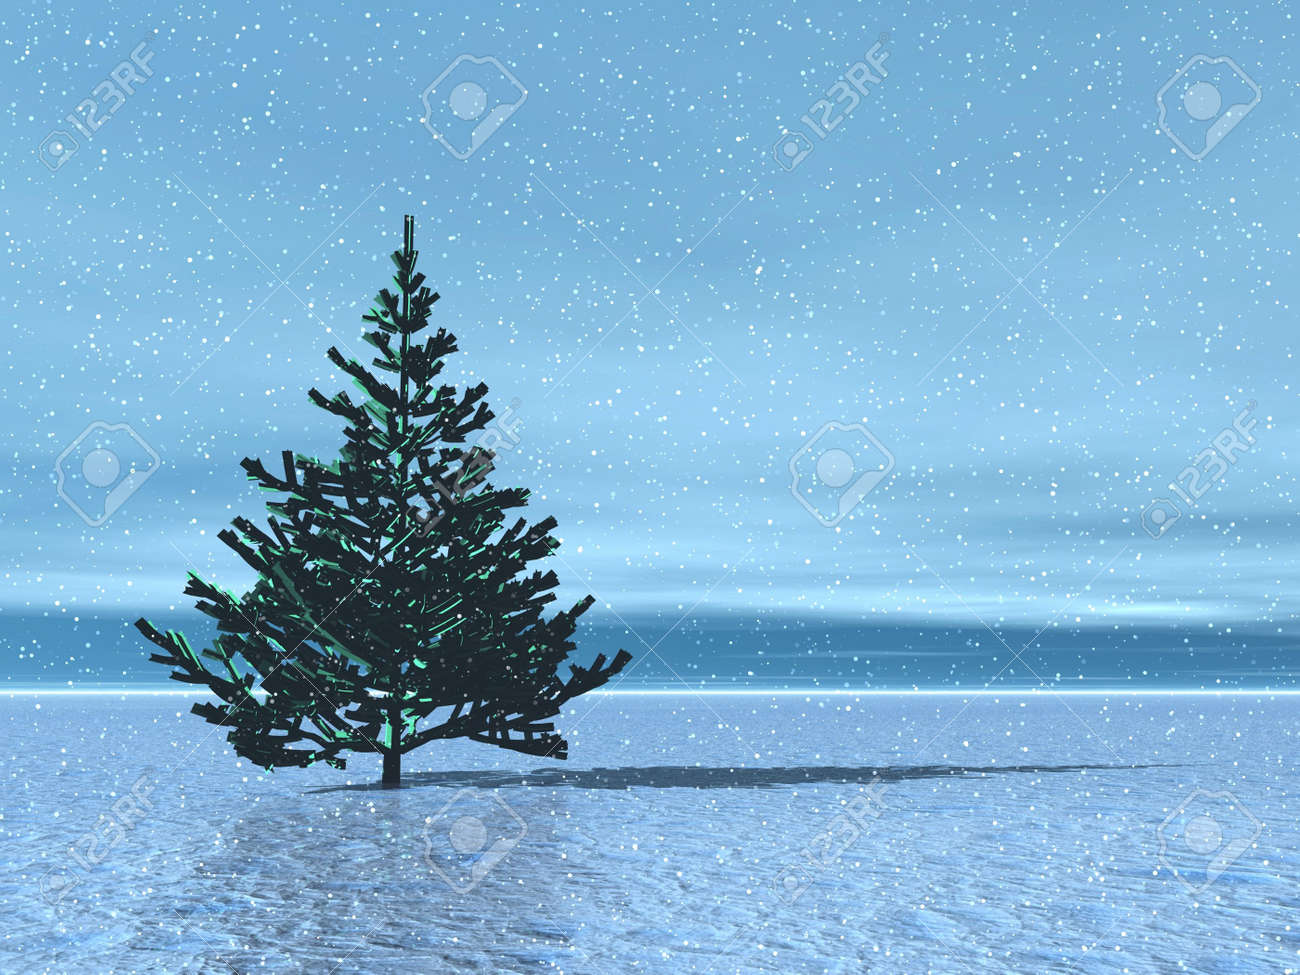 Lonely Christmas.Lonely Christmas Tree In Arctic